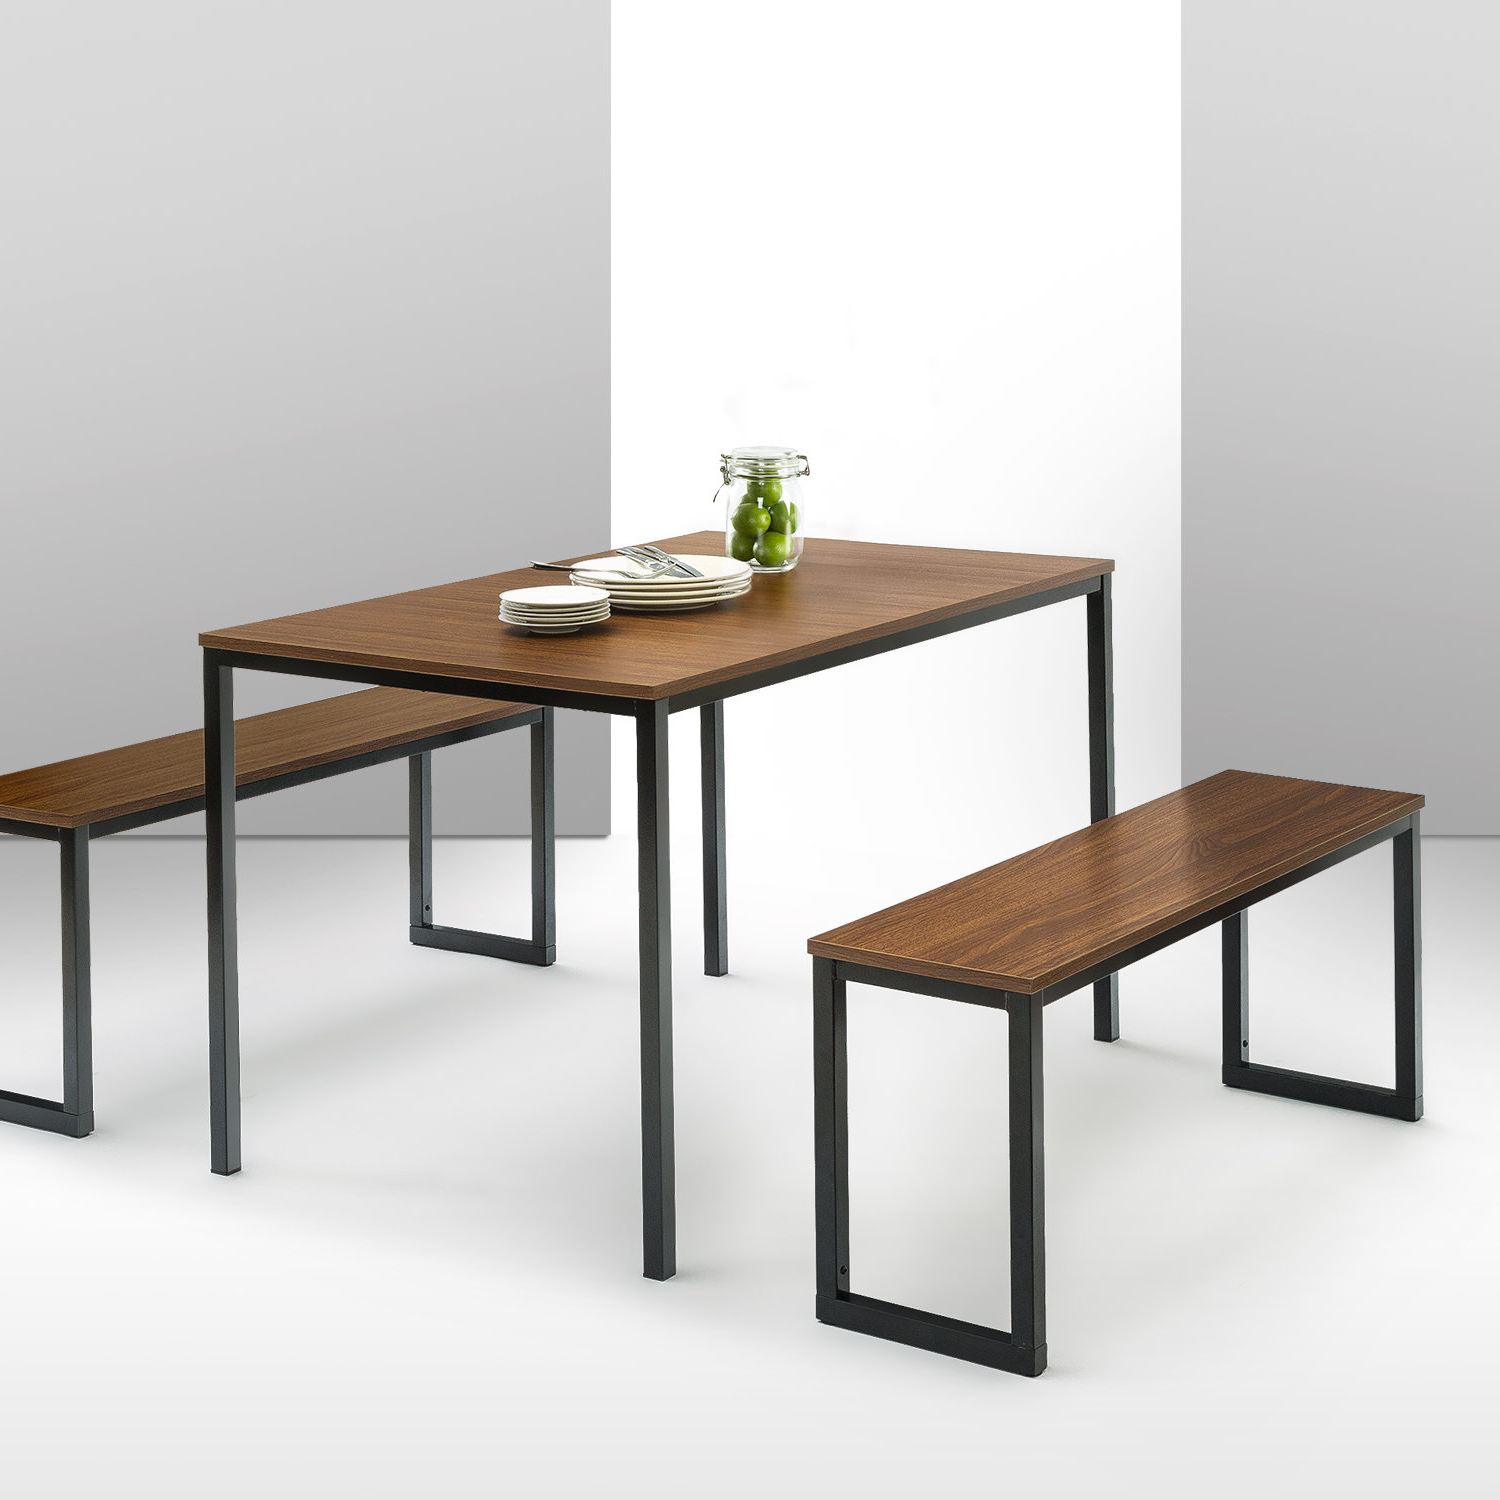 Frida 3 Piece Dining Table Set Pertaining To Most Recently Released Kerley 4 Piece Dining Sets (View 11 of 20)